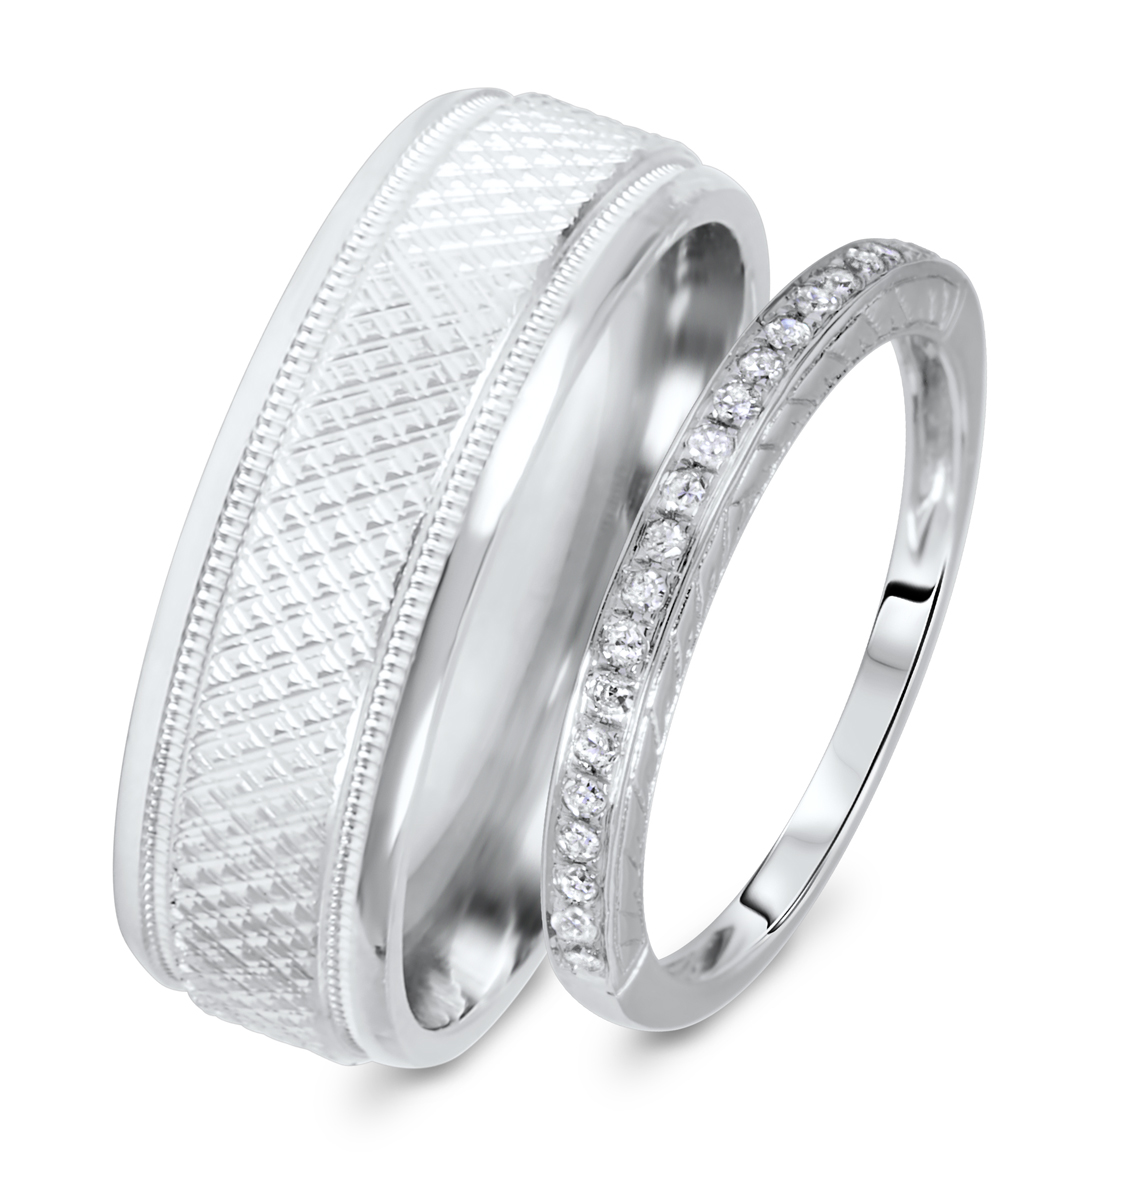 3 Budget His And Hers Wedding Ring Sets